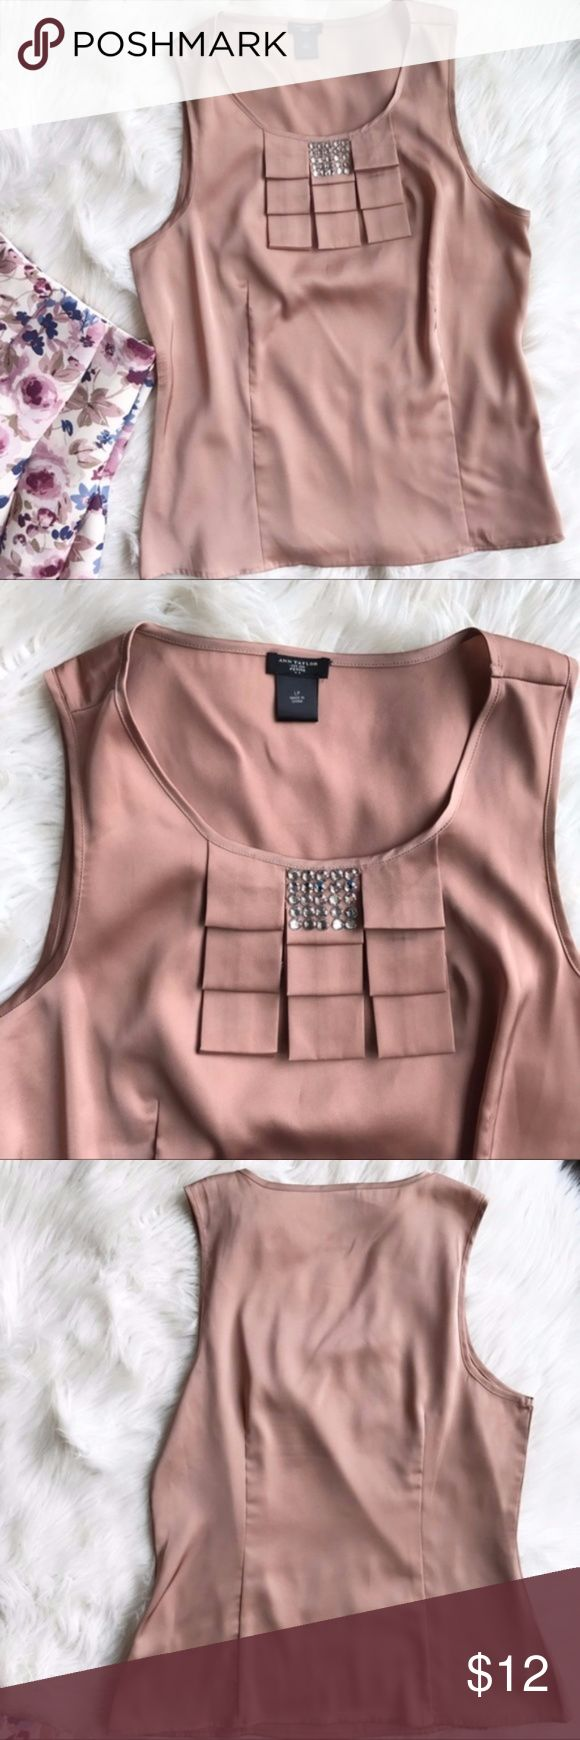 """Ann Taylor Sleeveless Career Blouse Excellent condition Career Blouse by Ann Taylor. Stone detailing at neckline, dark dusty rose color. Size large petite. Length - 25"""", bust - 21"""", waist - 18"""". Ann Taylor Tops Blouses"""